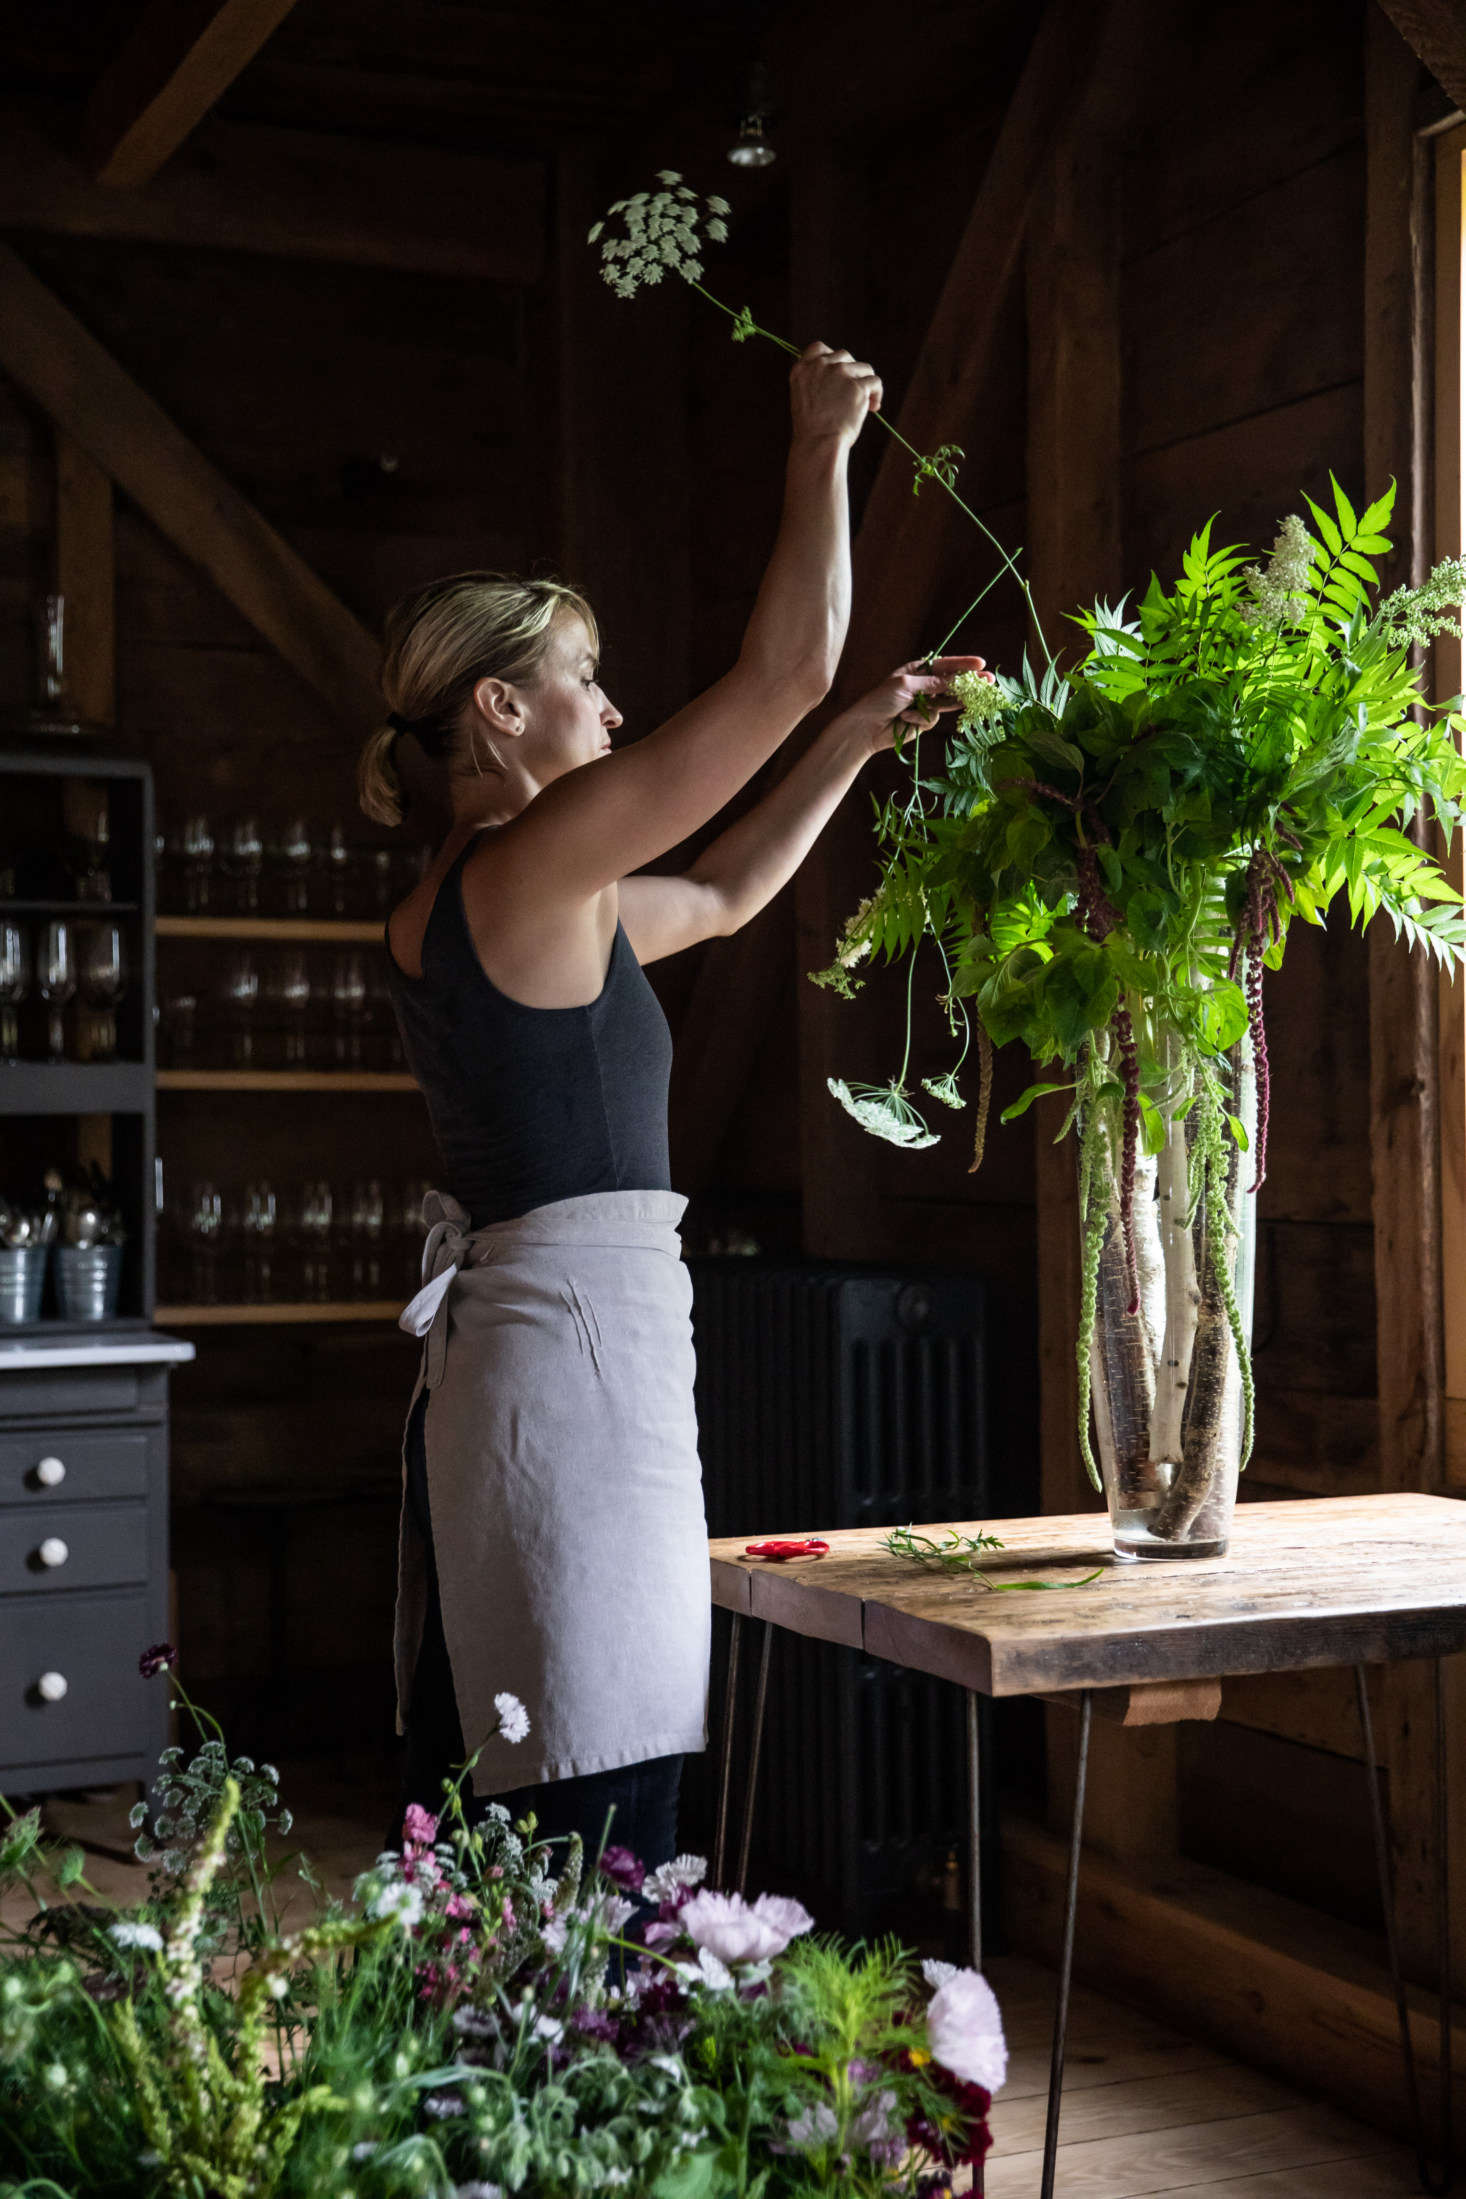 Most of the fittings at the Lost Kitchen are budget and vintage finds, from the antique china to the retro refrigerator and sink in the open kitchen. French&#8